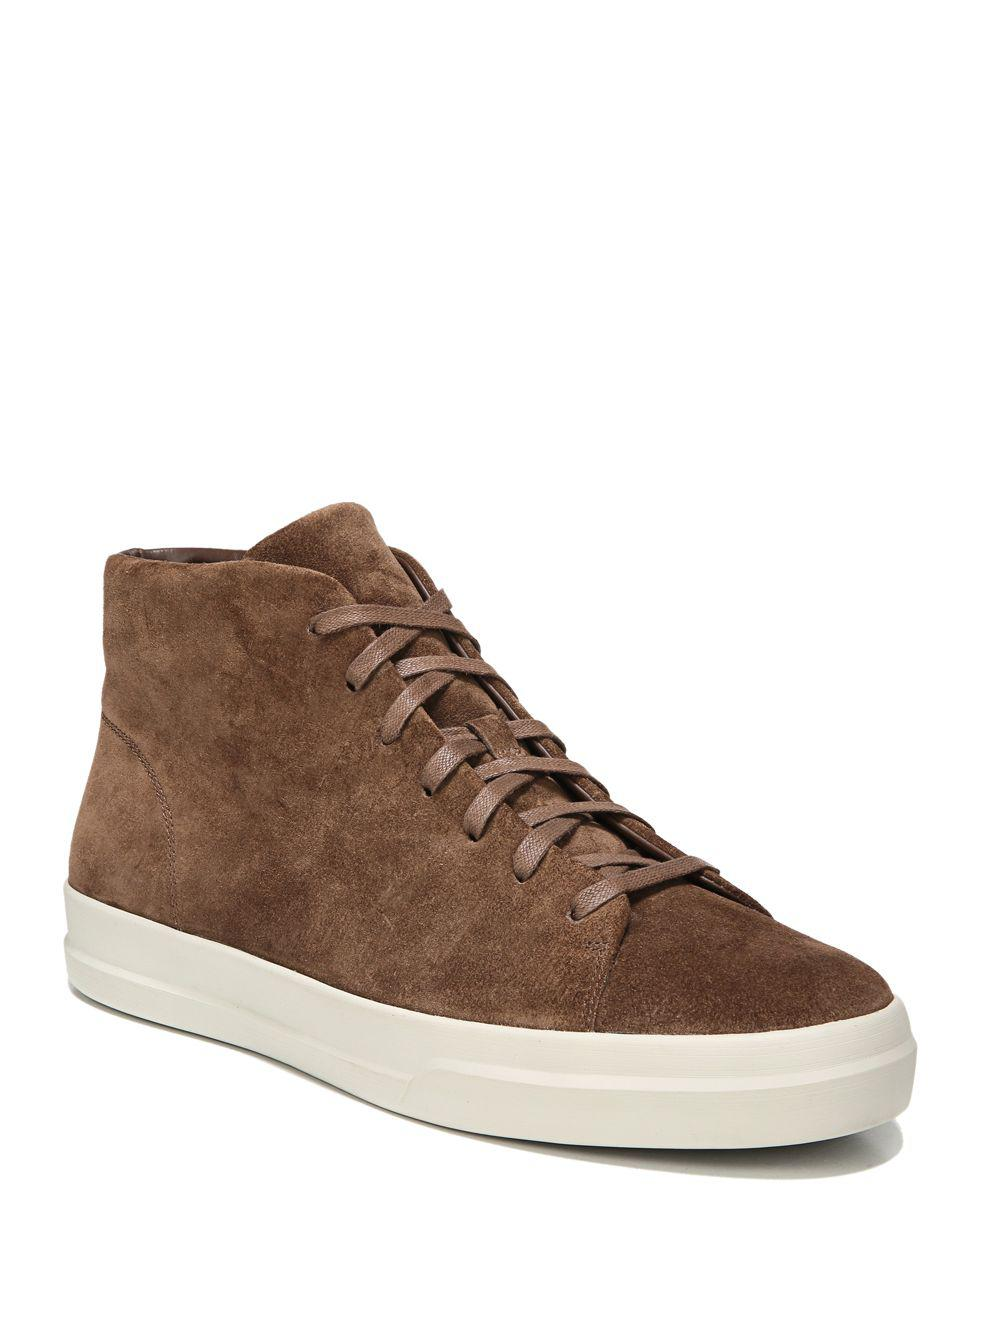 Lyst Vince Cullen Sport Suede High Top Sneakers In Brown For Men Jolie Clothing Jumpsuit Maroon S View Fullscreen